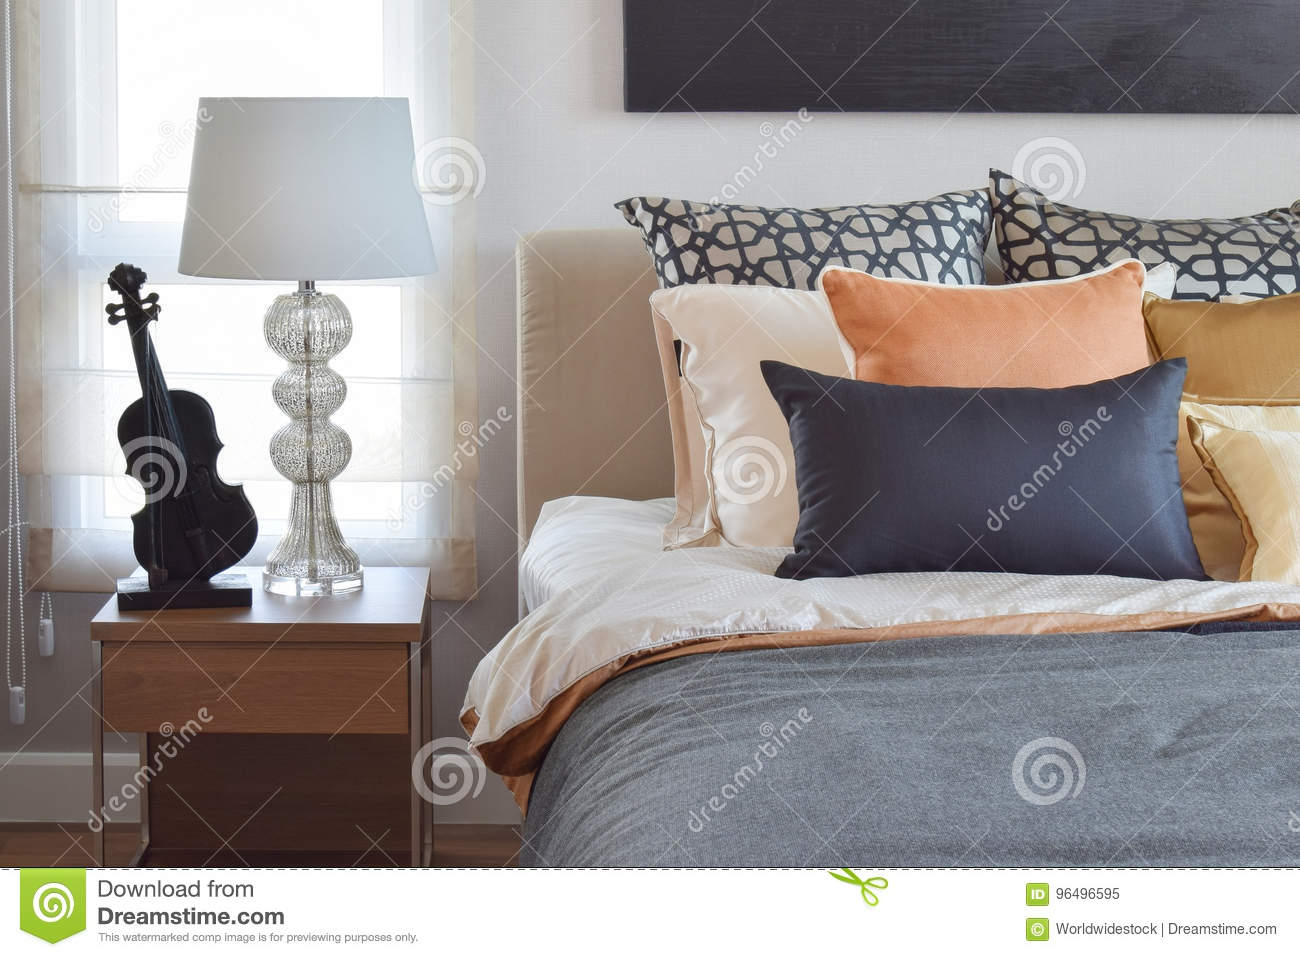 Modern Bedroom Interior With Orange And Gold Pillows On Bed And ...